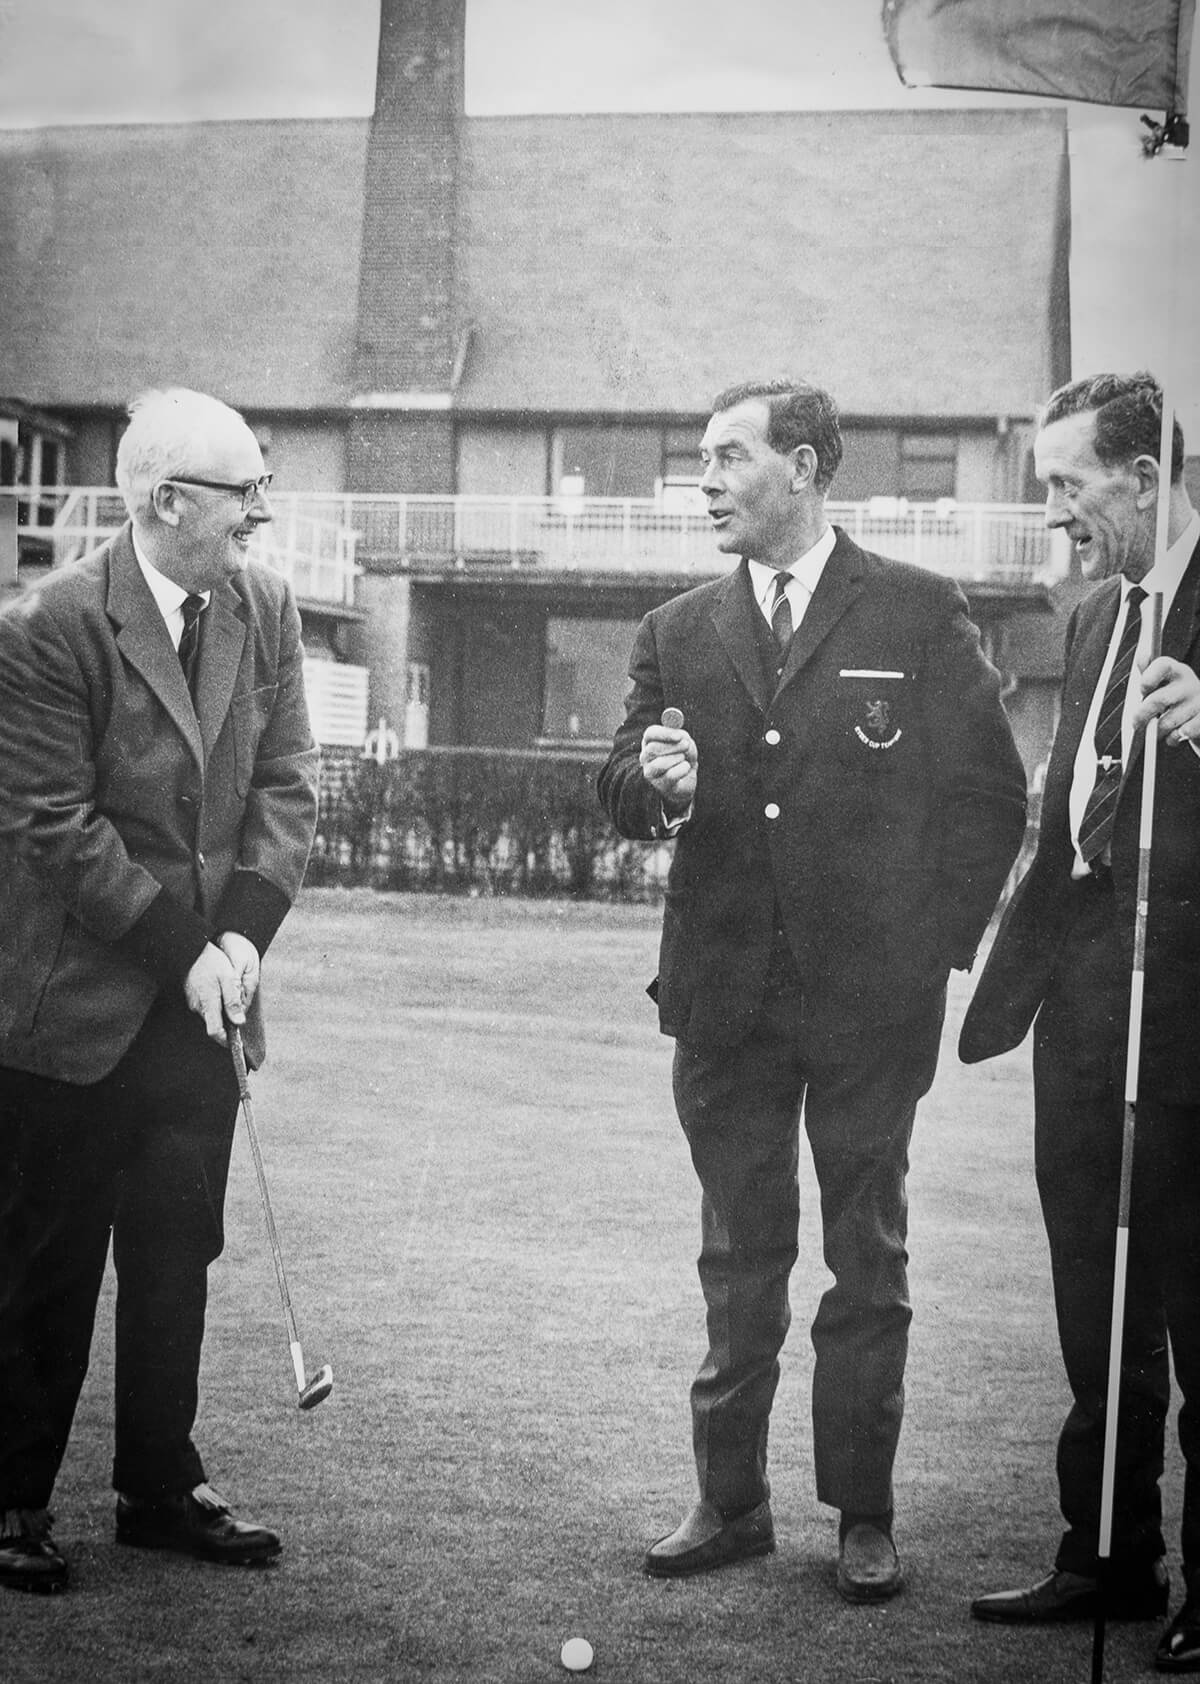 Captain's Drive in at Royal Dublin 1967. The Captain L.P. Gunning with Club Professional Christy O'Connor and outgoing Captain W.J. Howley on 18th Green.